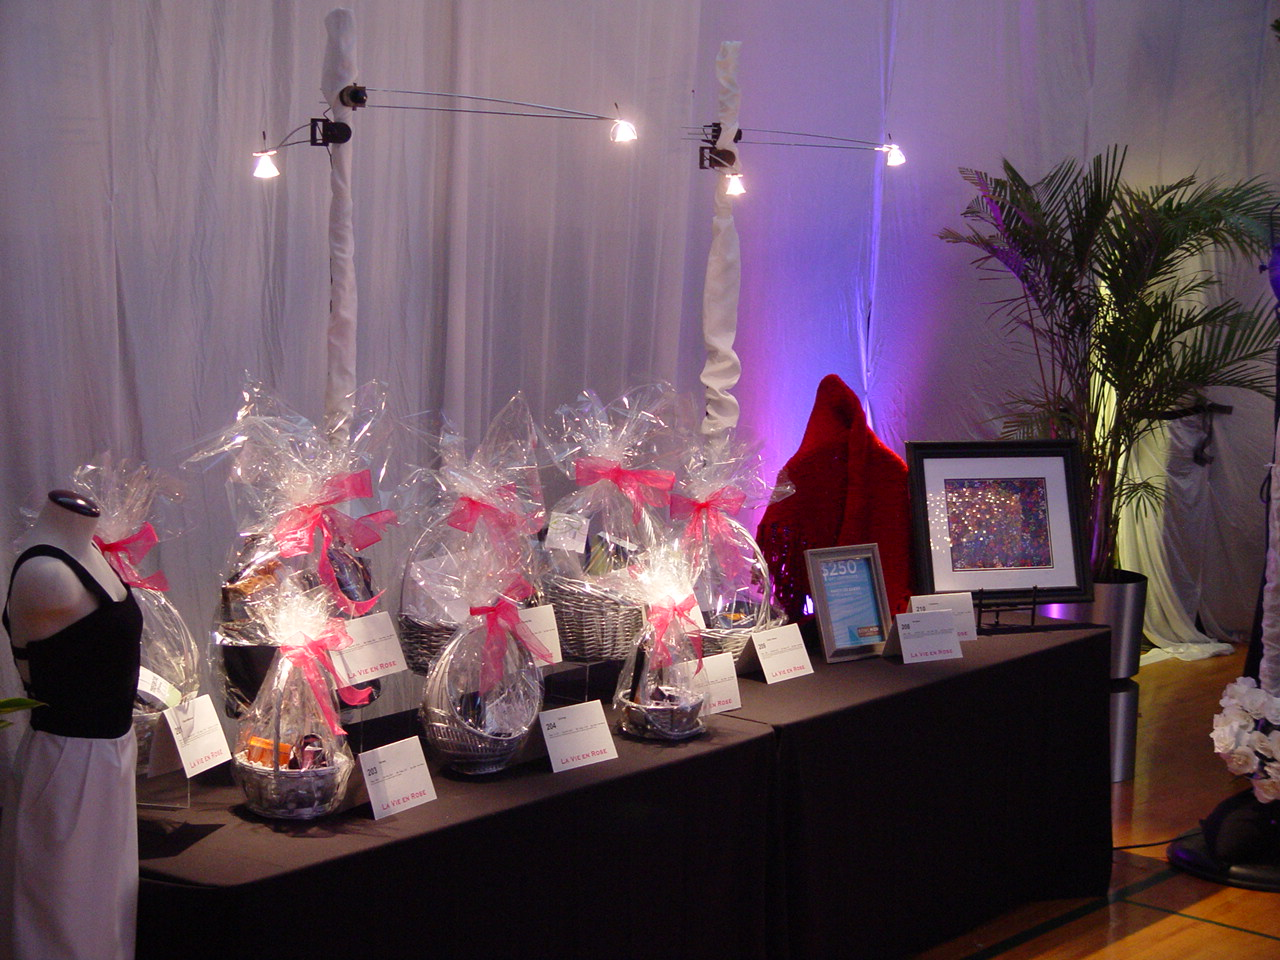 NJ_event decor_rental_auction_lighting_gala_fundraiser_design.jpg